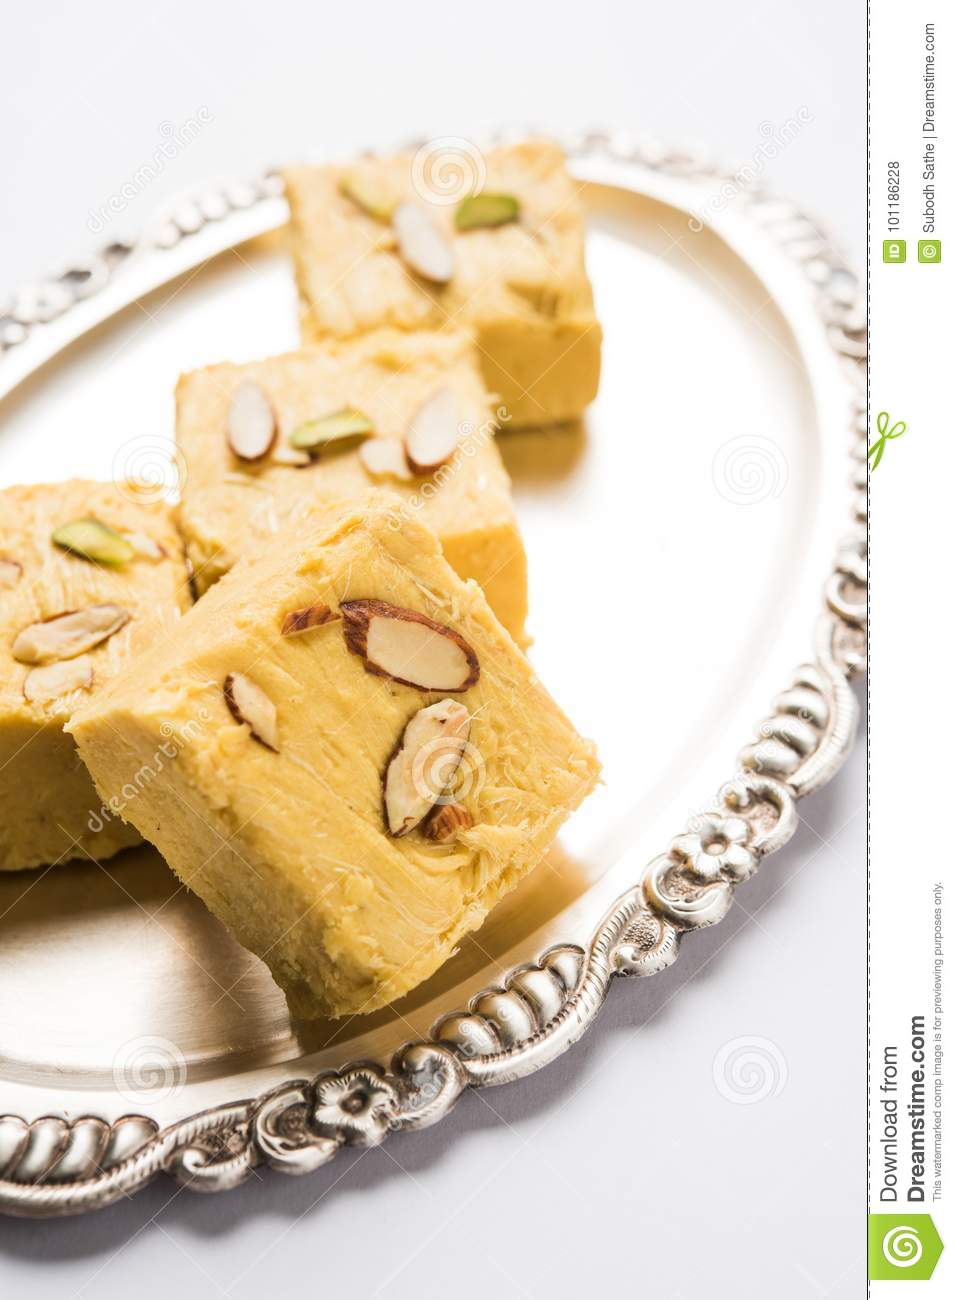 Indian sweet soan roll or soan papdi or patisa stock photo image download comp forumfinder Choice Image